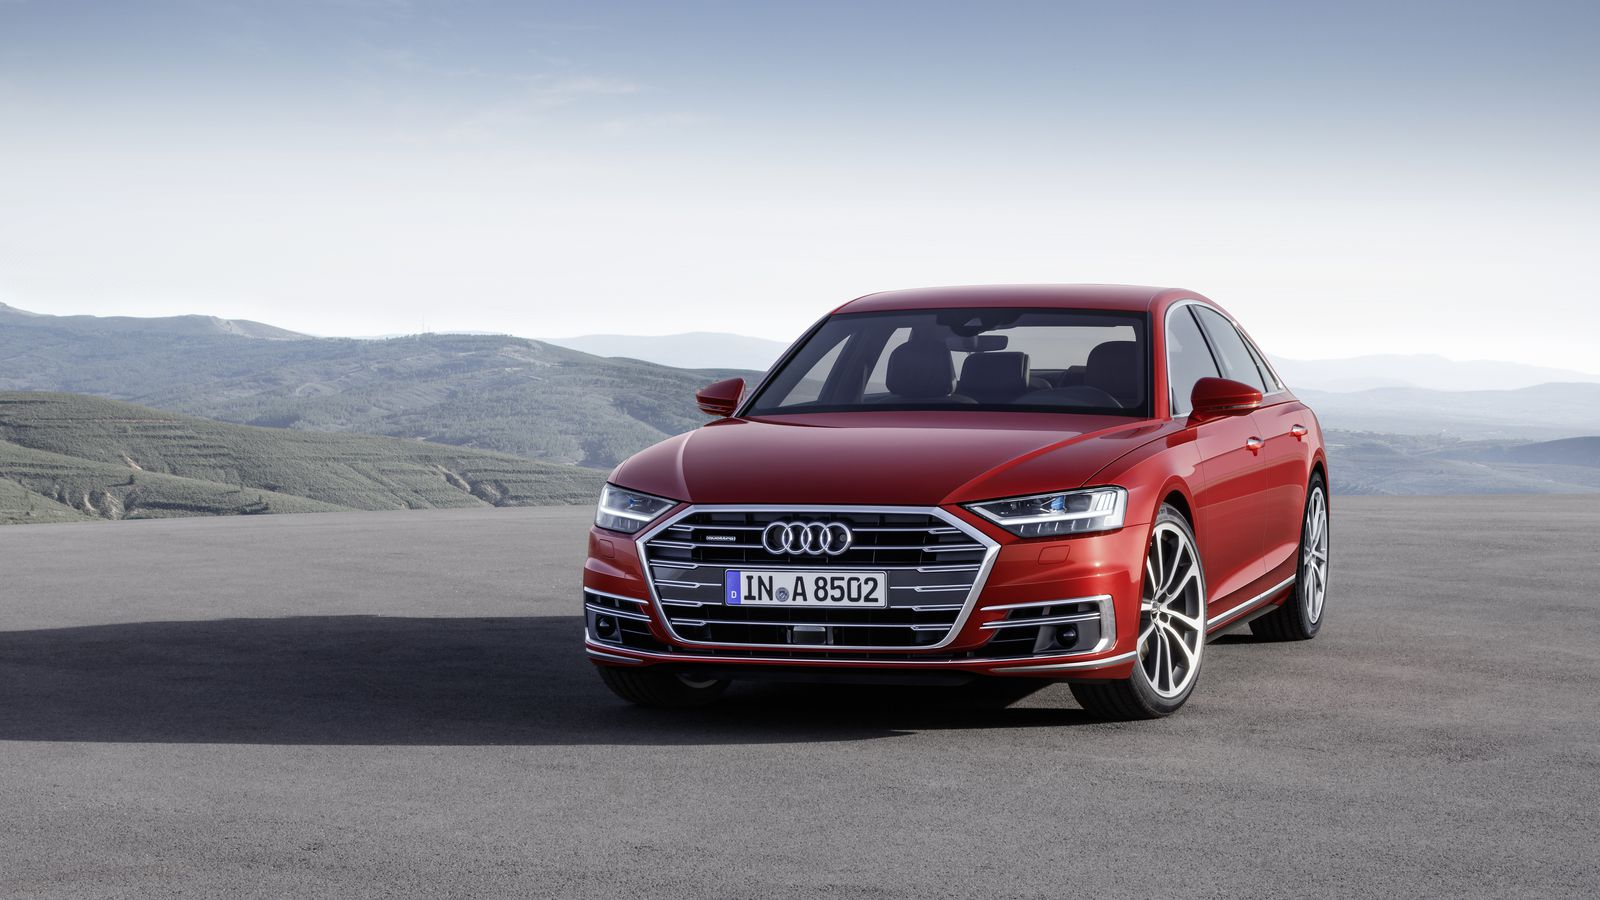 The new Audi A8 luxury sedan is a high-tech beast that can drive itself